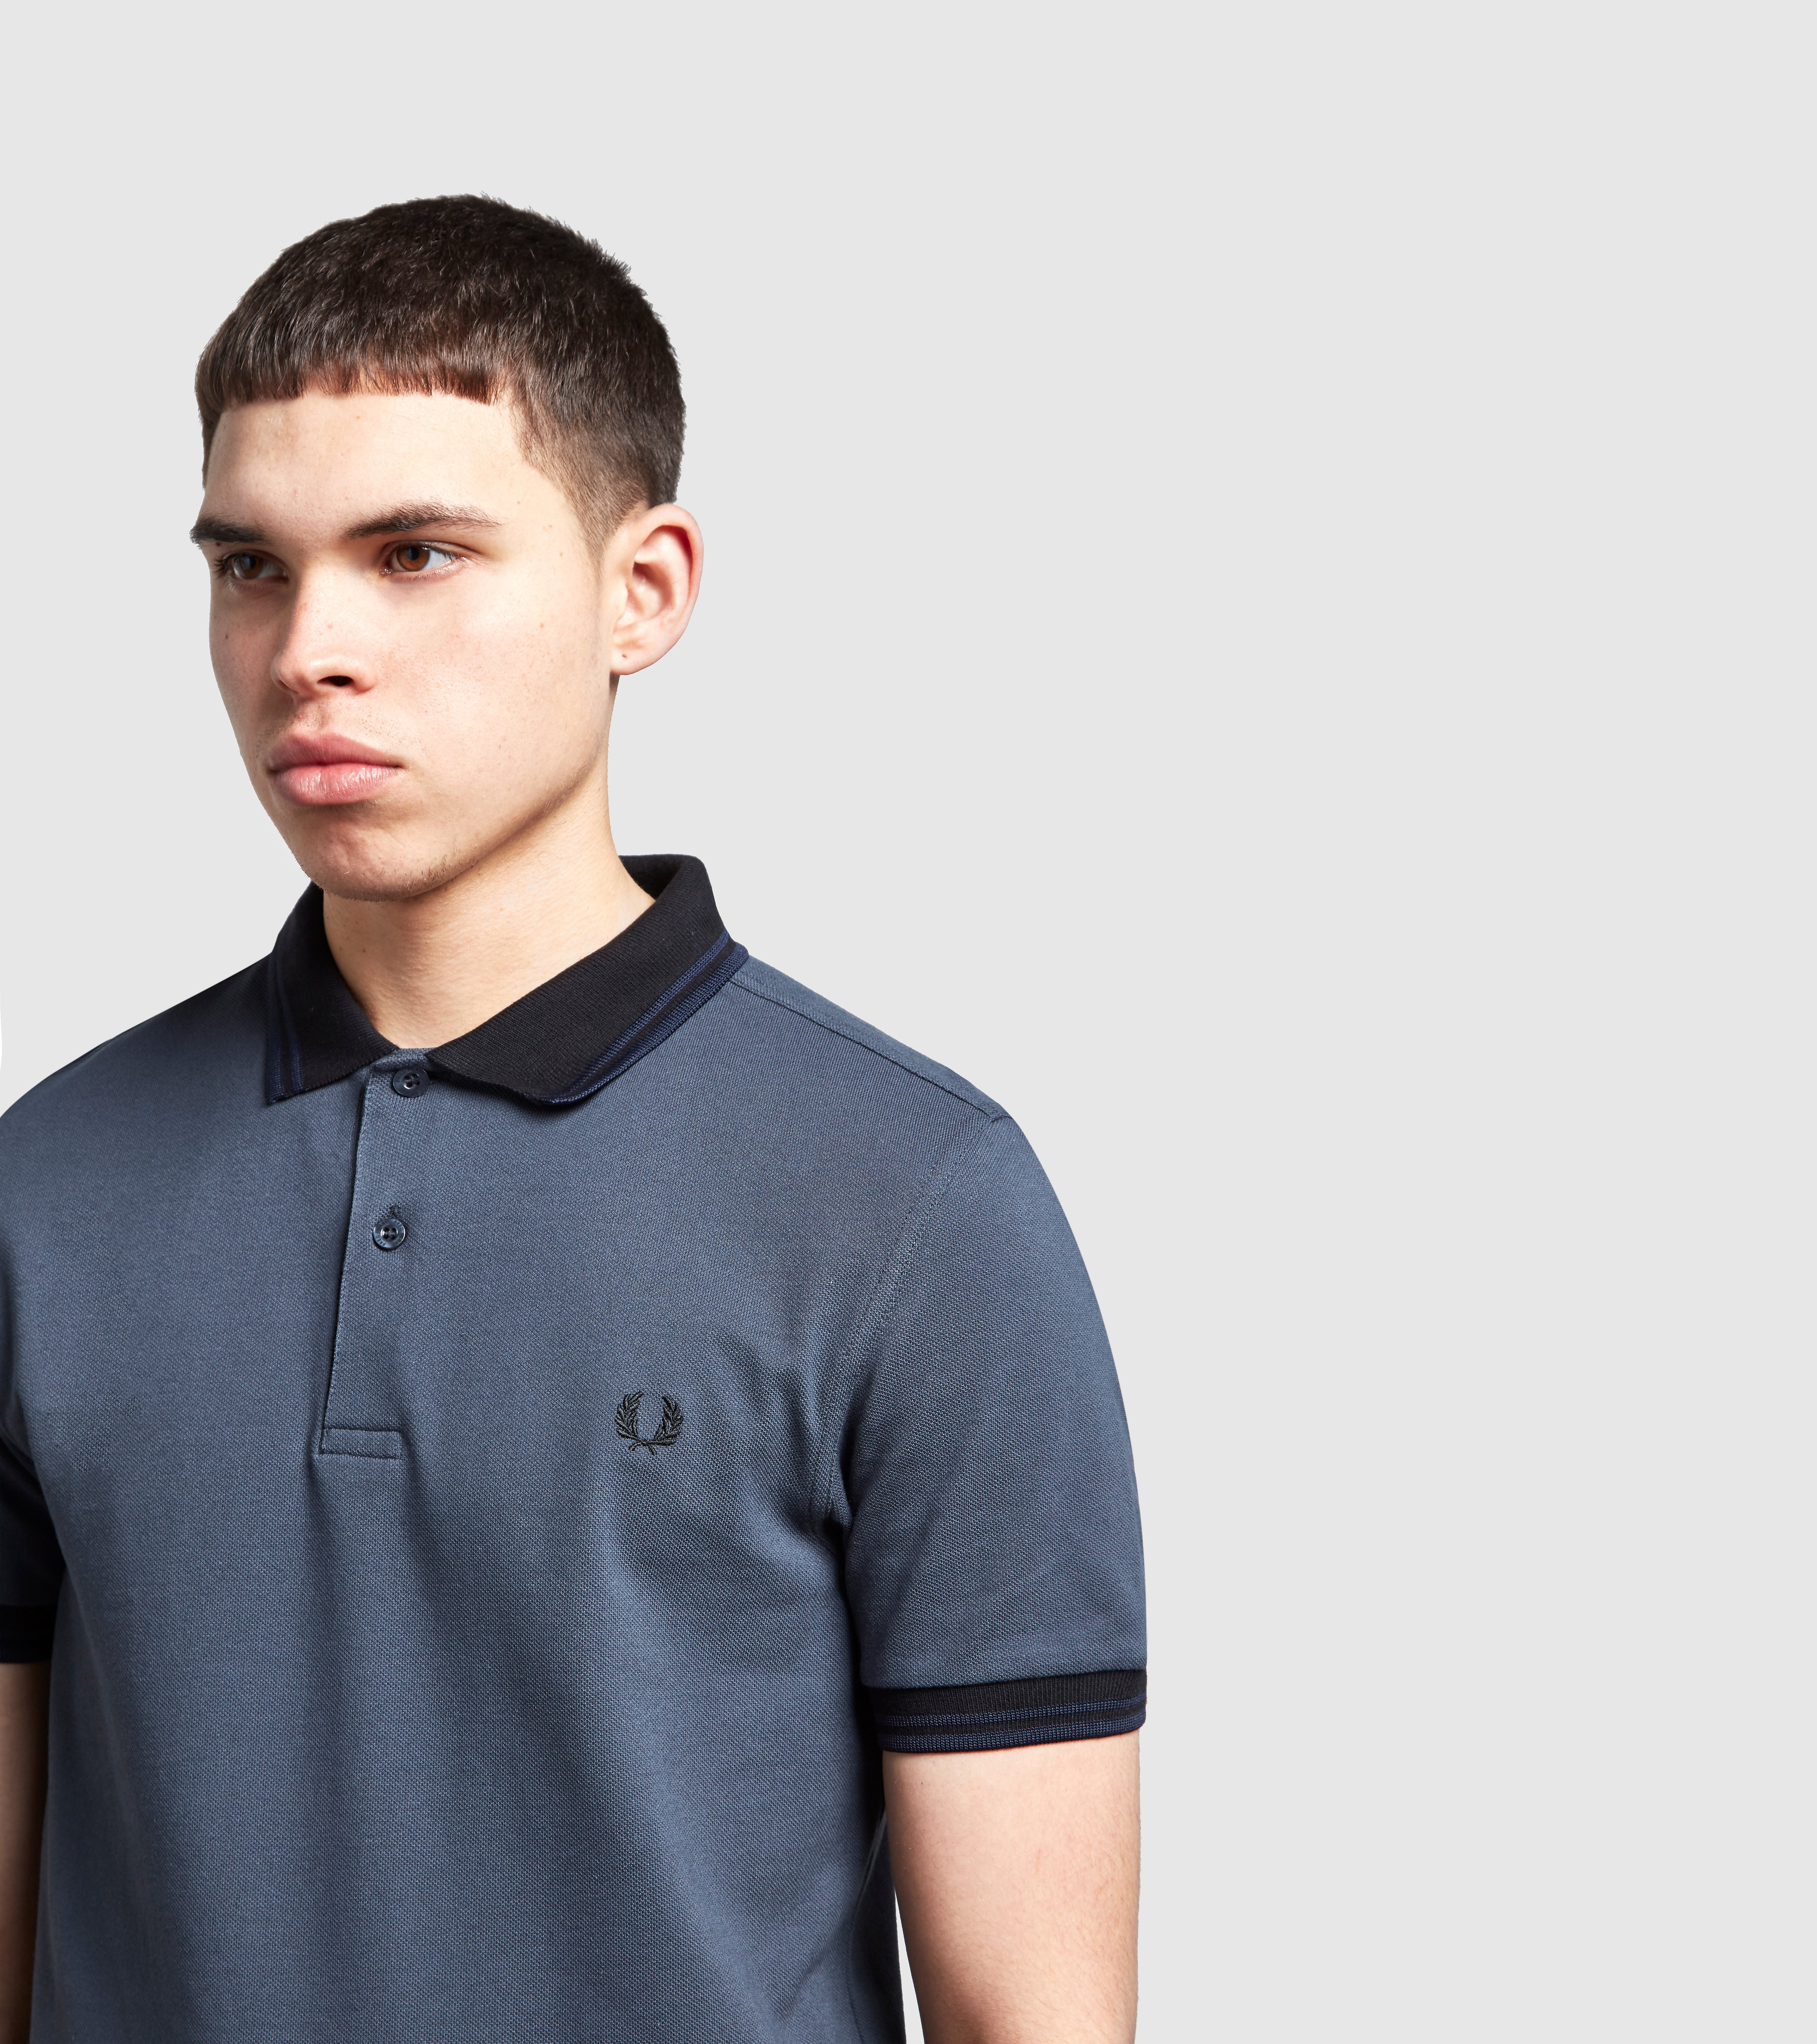 Fred Perry Polo Shirt - size? Exclusive